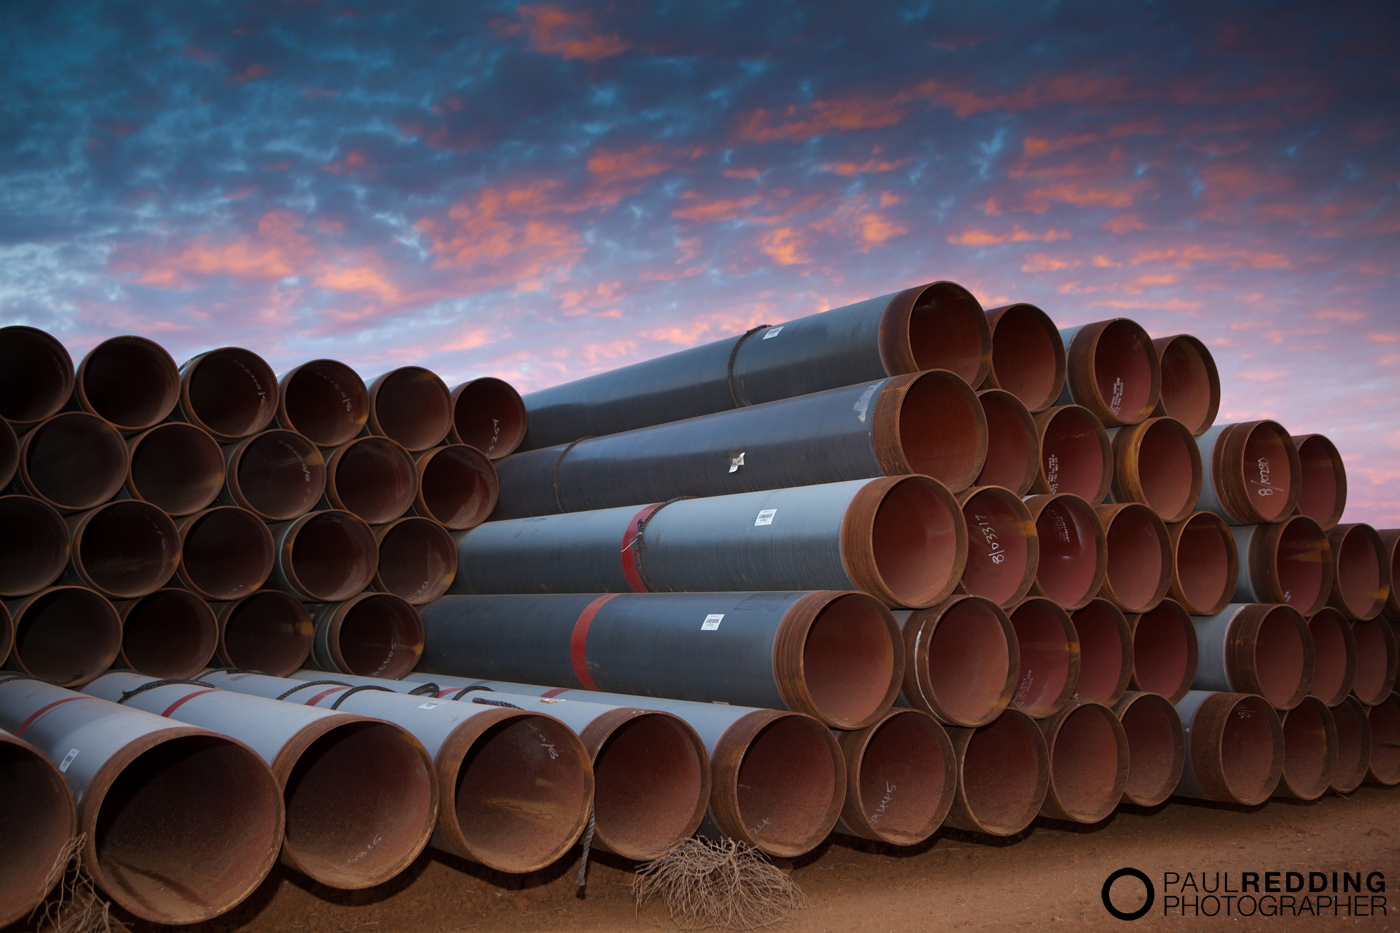 QSN3 Epic Energy - Gas Pipeline construction photography by Industrial Photographer, Paul Redding